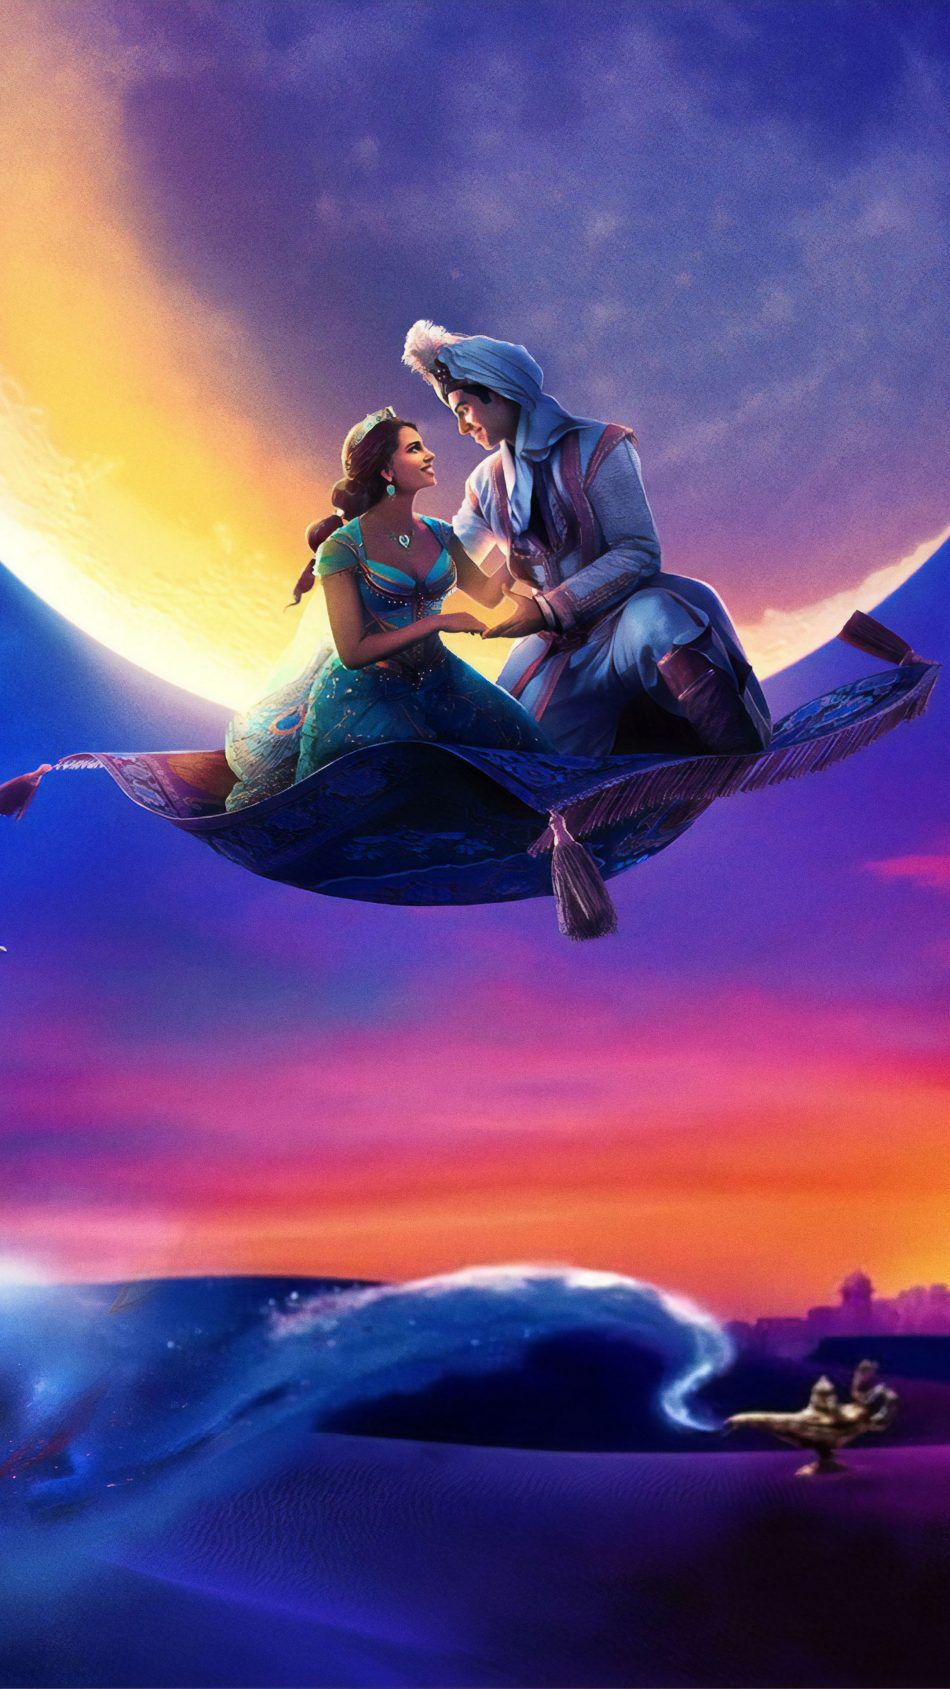 Naomi Scott Mena Massoud In Aladdin 2019 Movie Wallpapers 950x1689